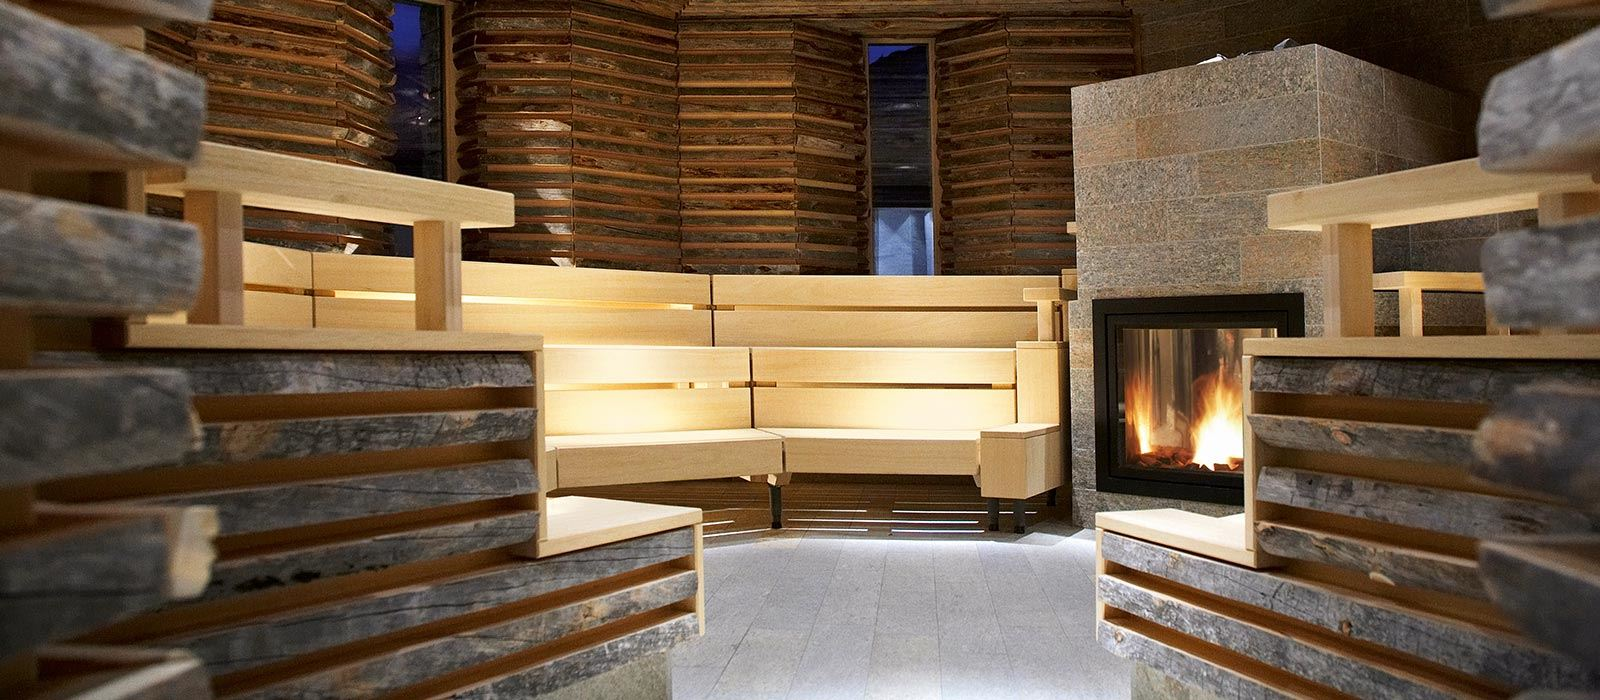 Tschuggen Grand Hotel_Wellness_Sauna